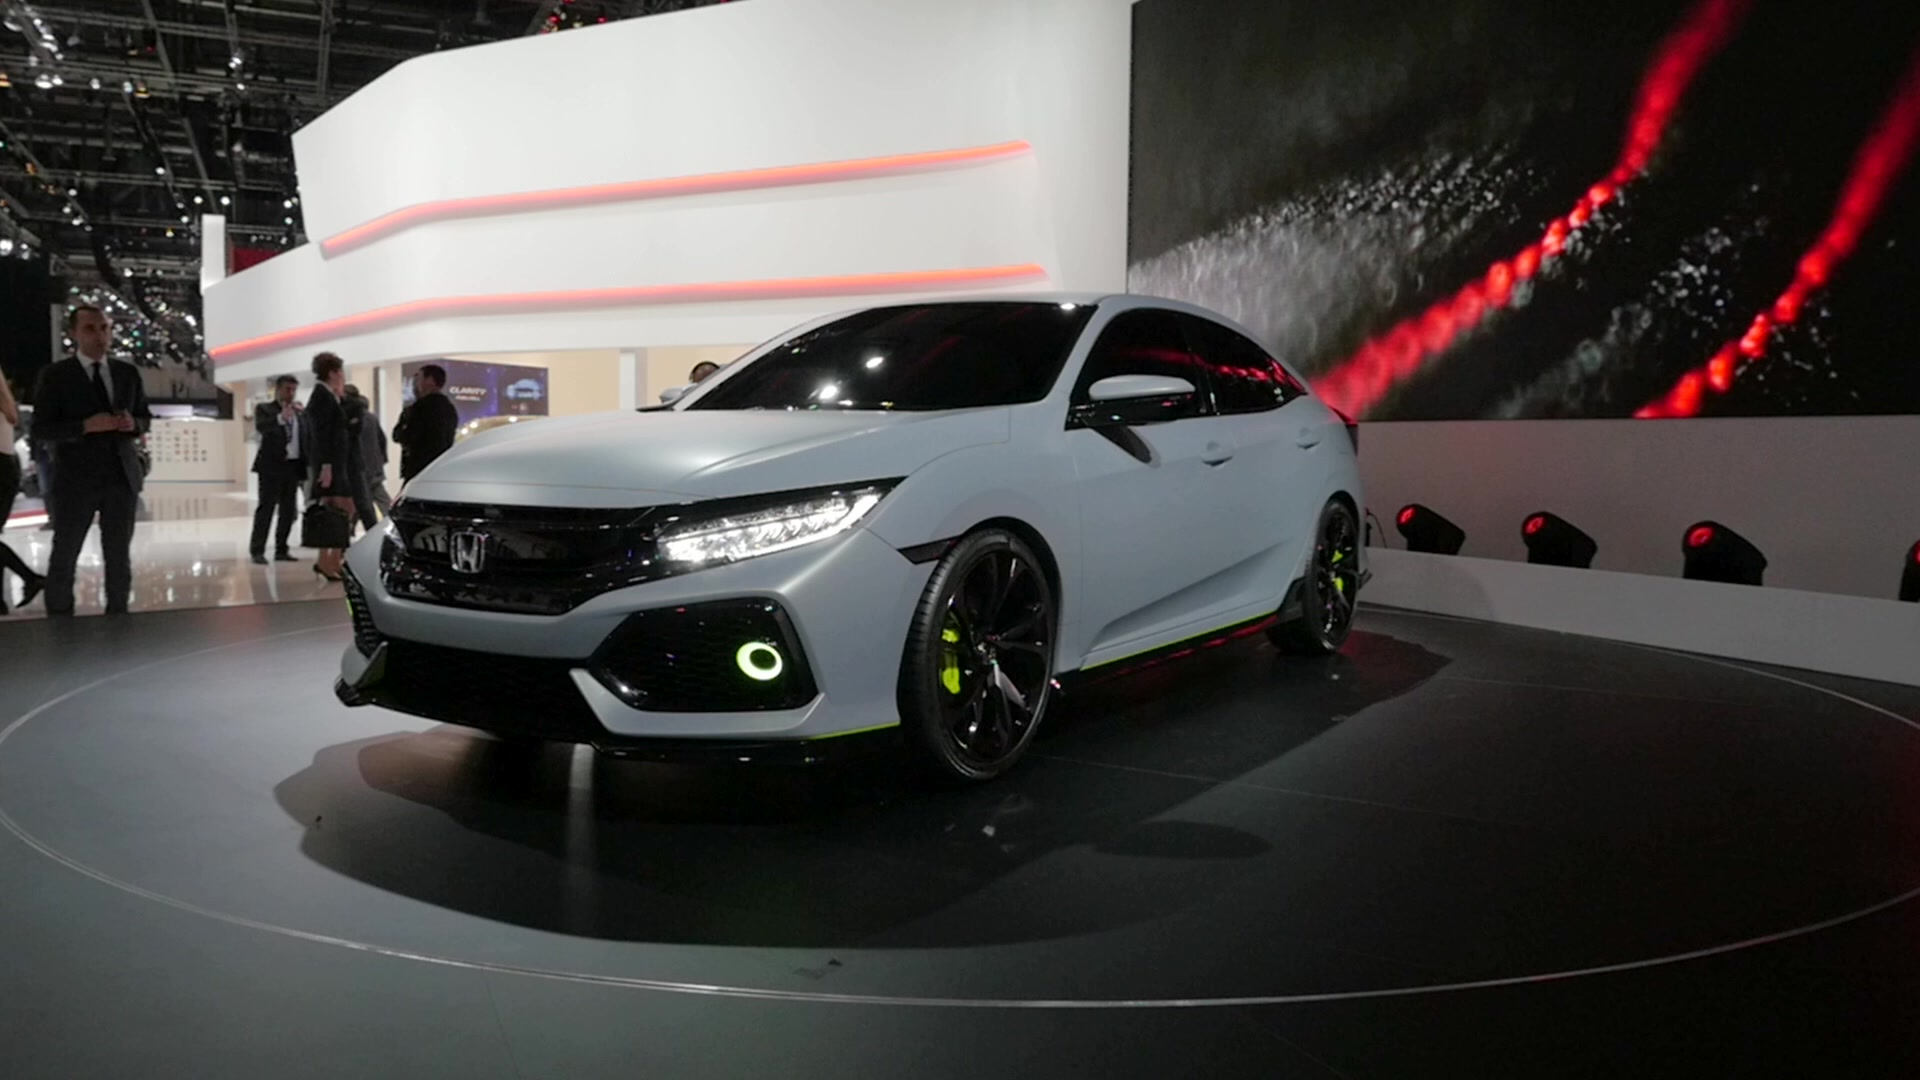 Honda Civic Hatchback Prototype | 2016 Geneva Motor Show | Beauty-Roll